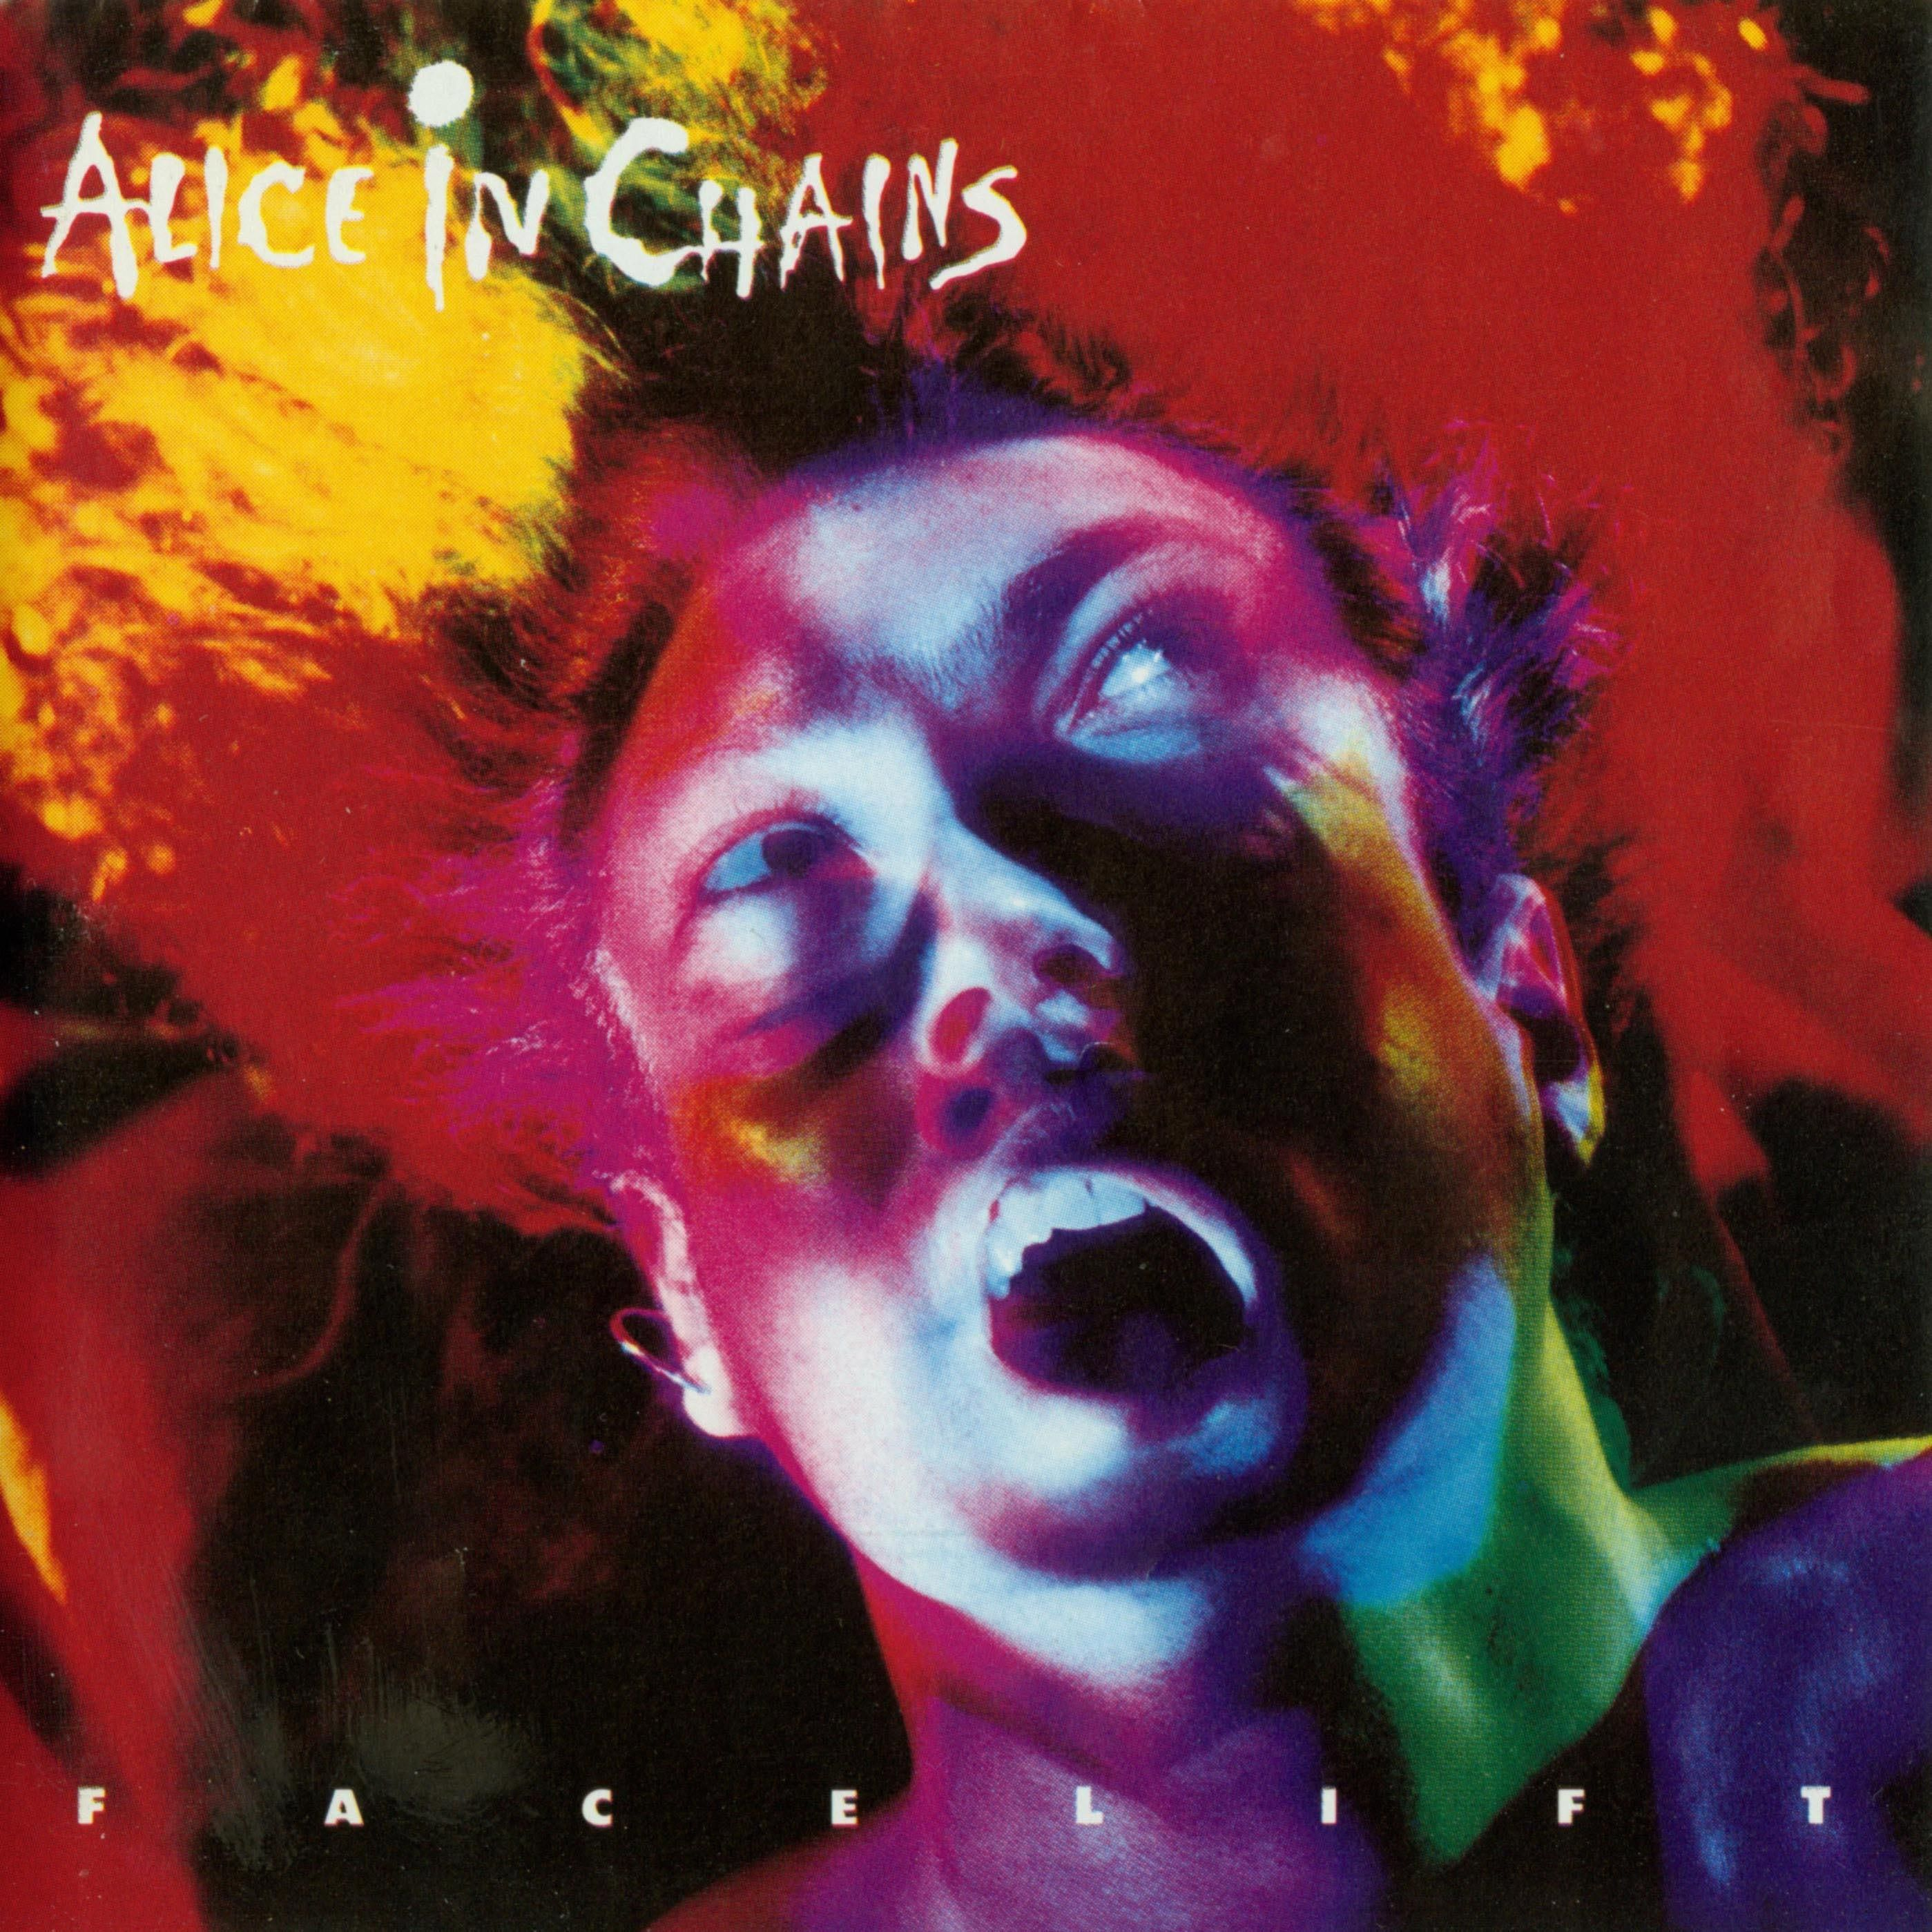 3 Alice In Chains Facelift Layne Staley Is Really One Of The